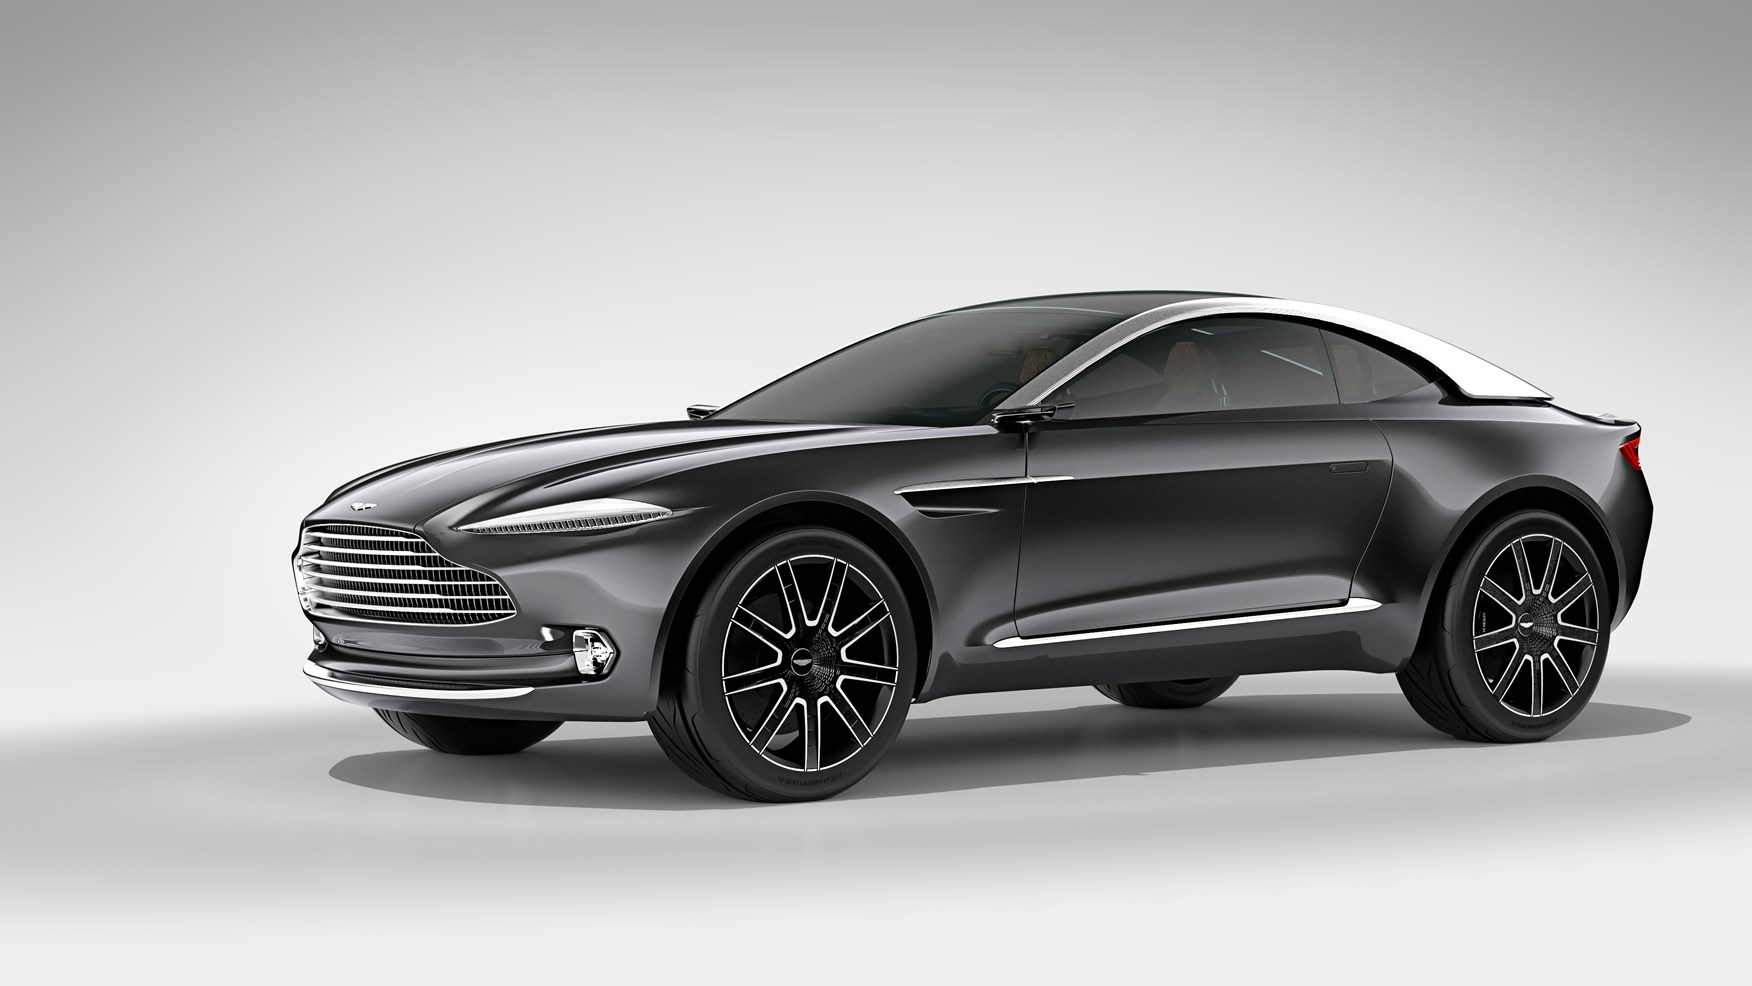 Aston Martin stays in the fast lane revised business plan lists